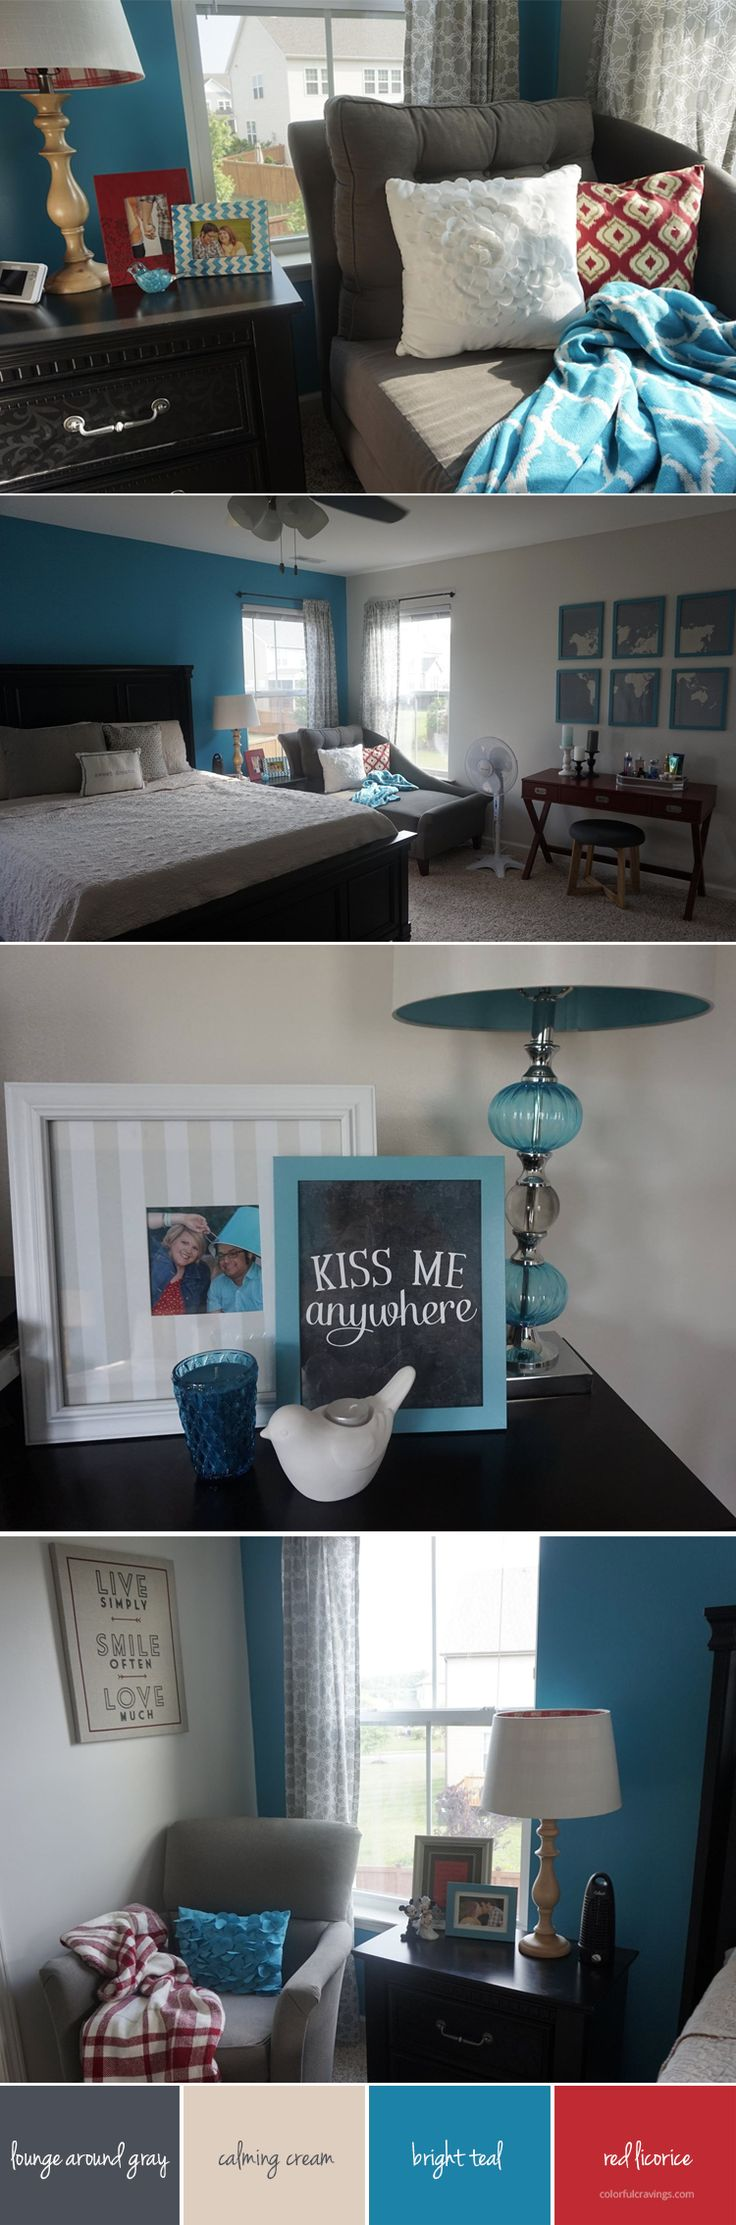 master bedroom | sea inspired | red blue teal cream gray | colorfulcravings.com